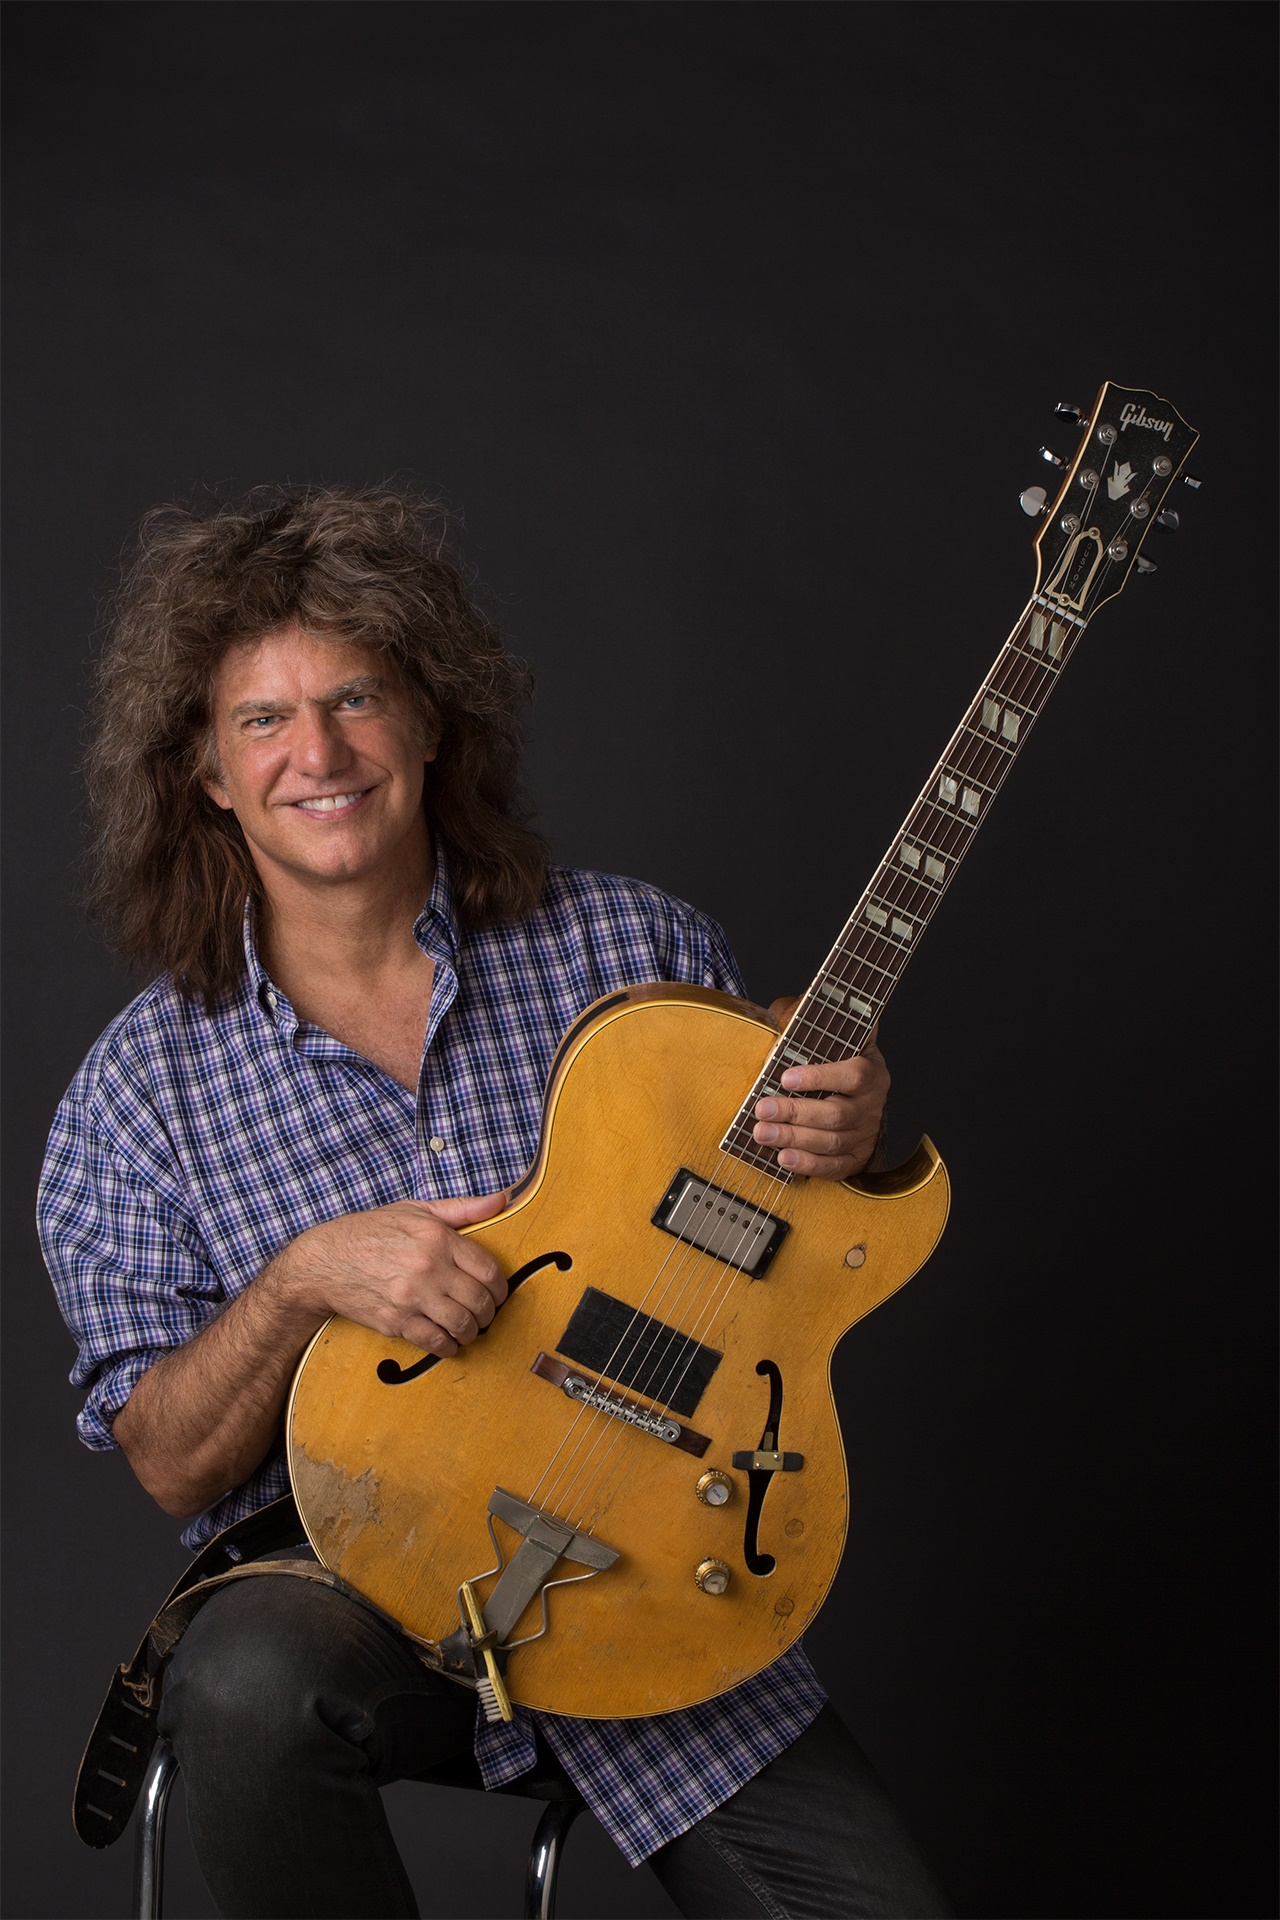 This is a photo of musician Pat Metheny